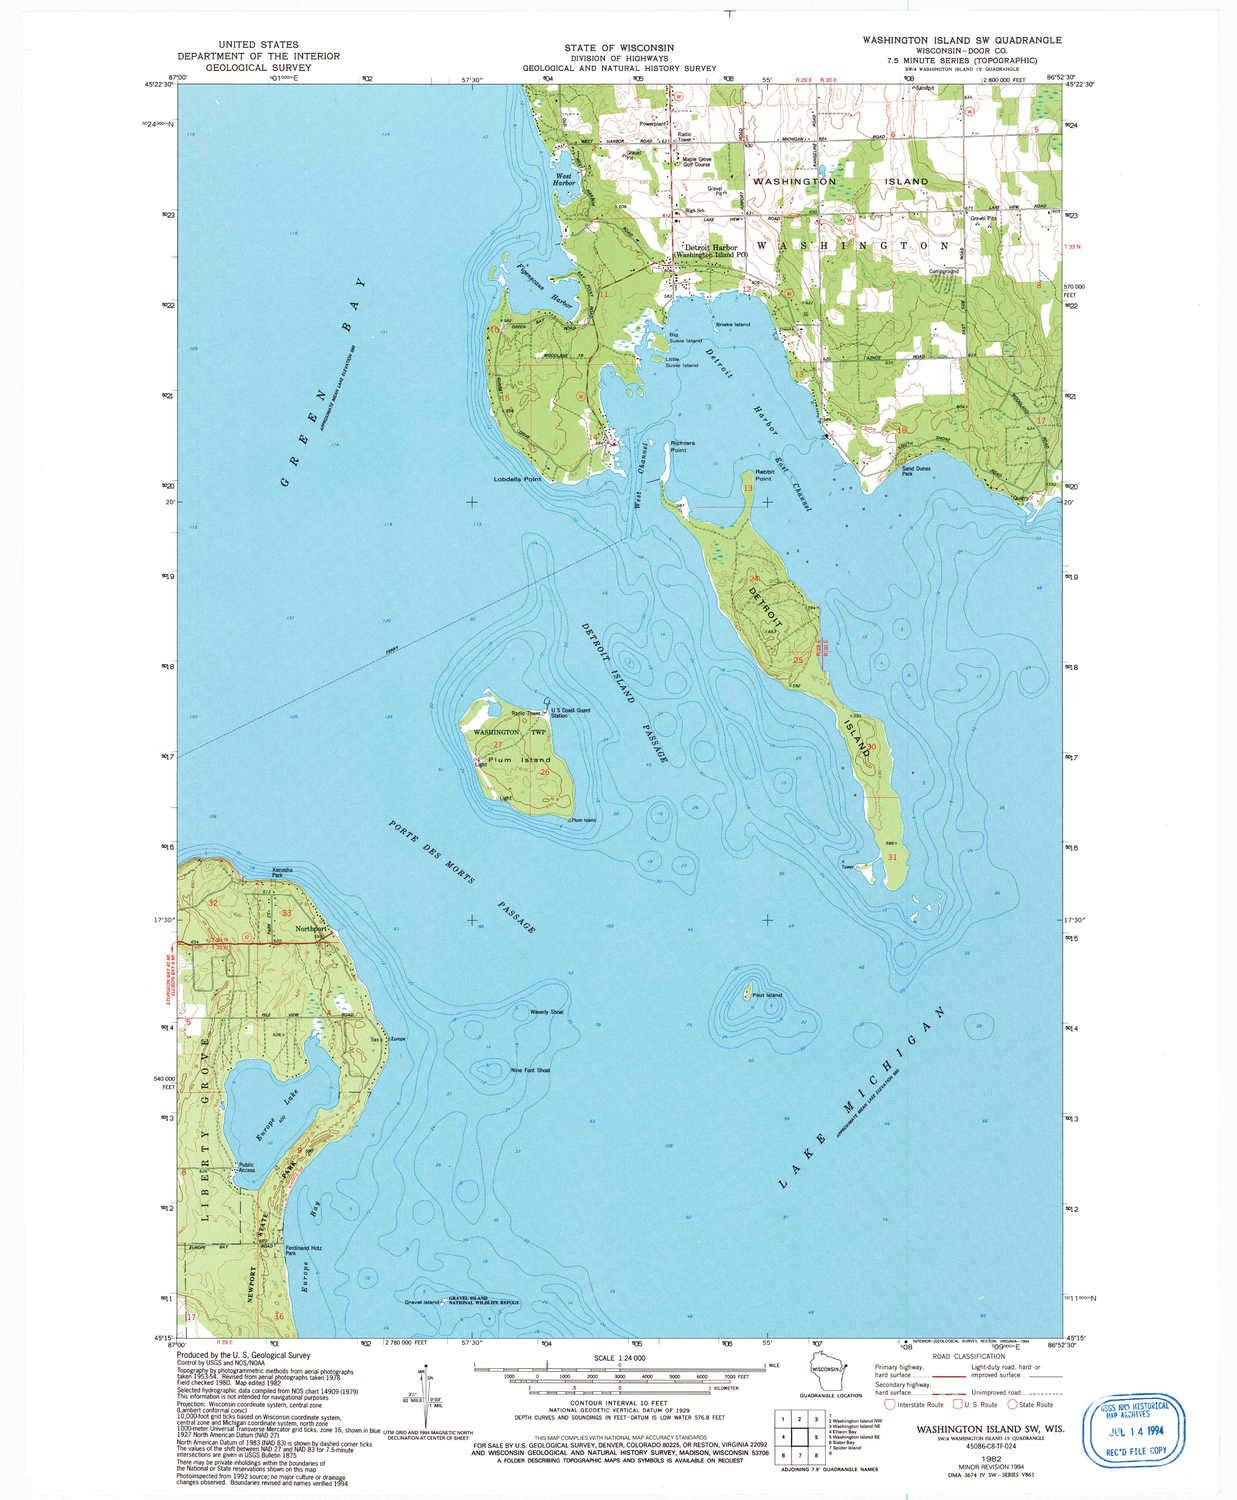 Amazon.com : YellowMaps Washington Island SW WI topo map, 1 ... on map of dearborn, map of neighborhoods in detroit, map of lincoln park, map of brownstown, map of romulus, map of west detroit, map of river rouge, map of se detroit, map of westland,